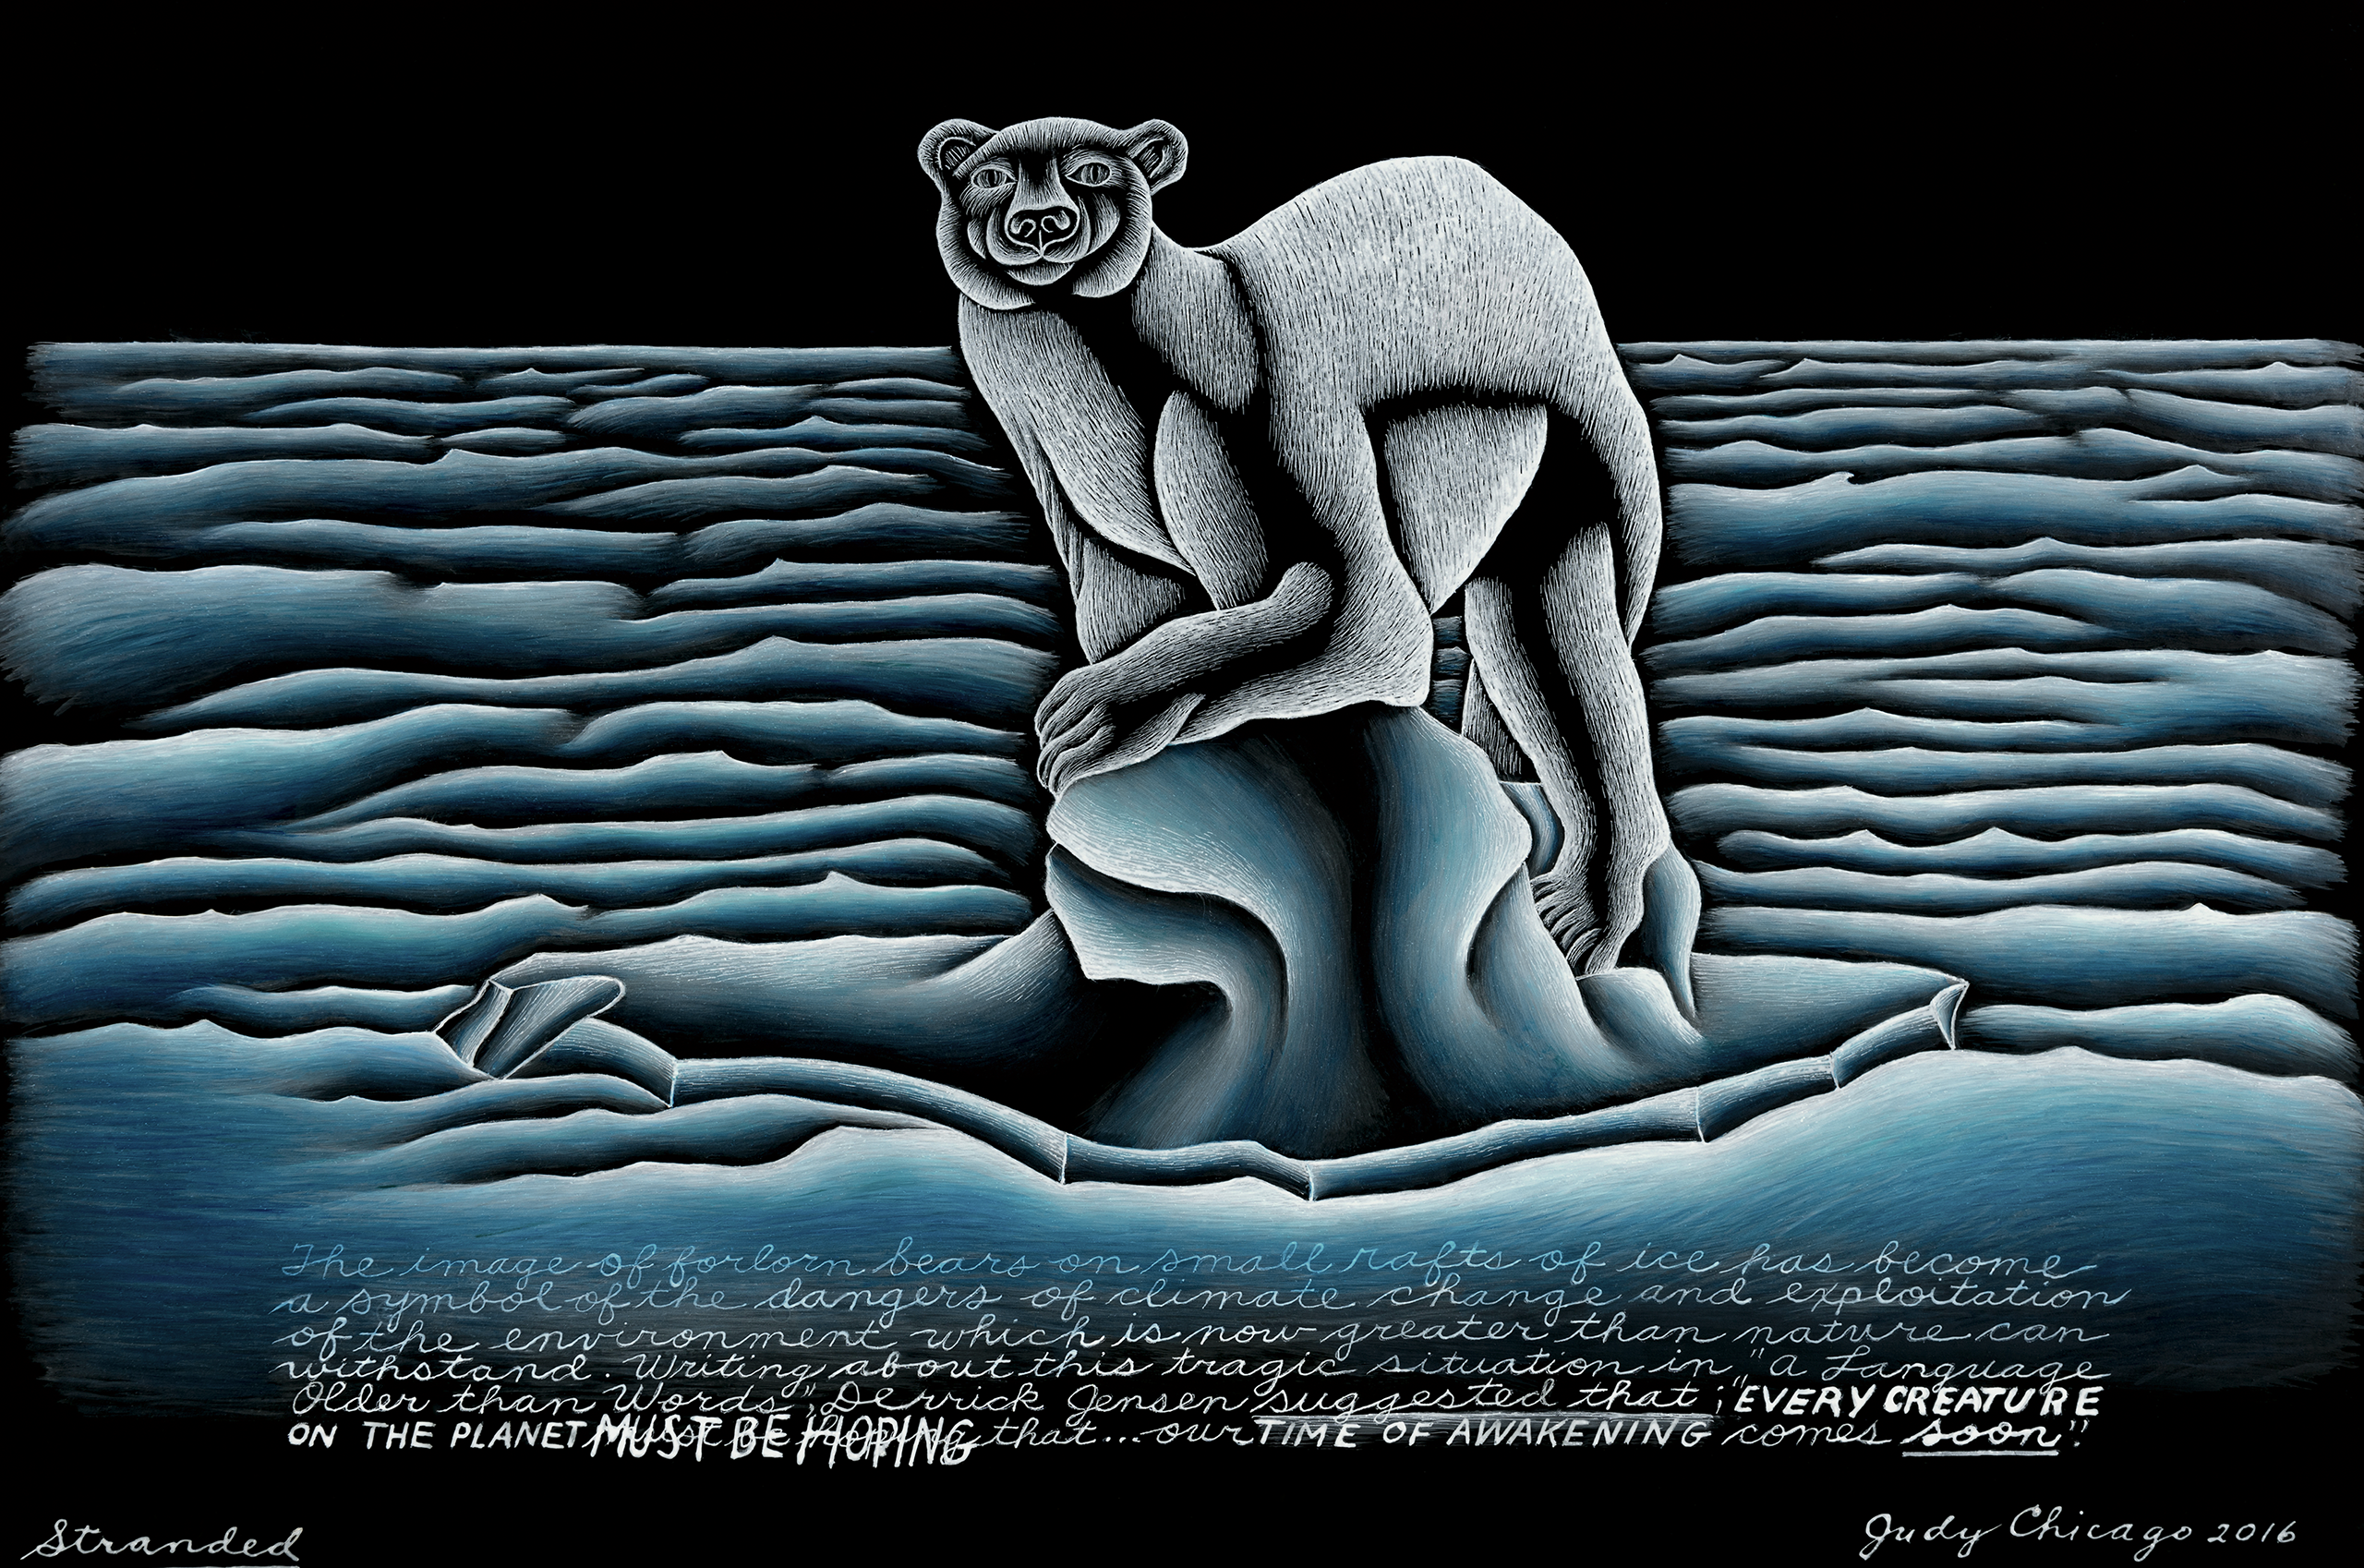 Painting on black glass shows a polar bear standing on a small block of ice in a choppy ocean and staring out at viewer.